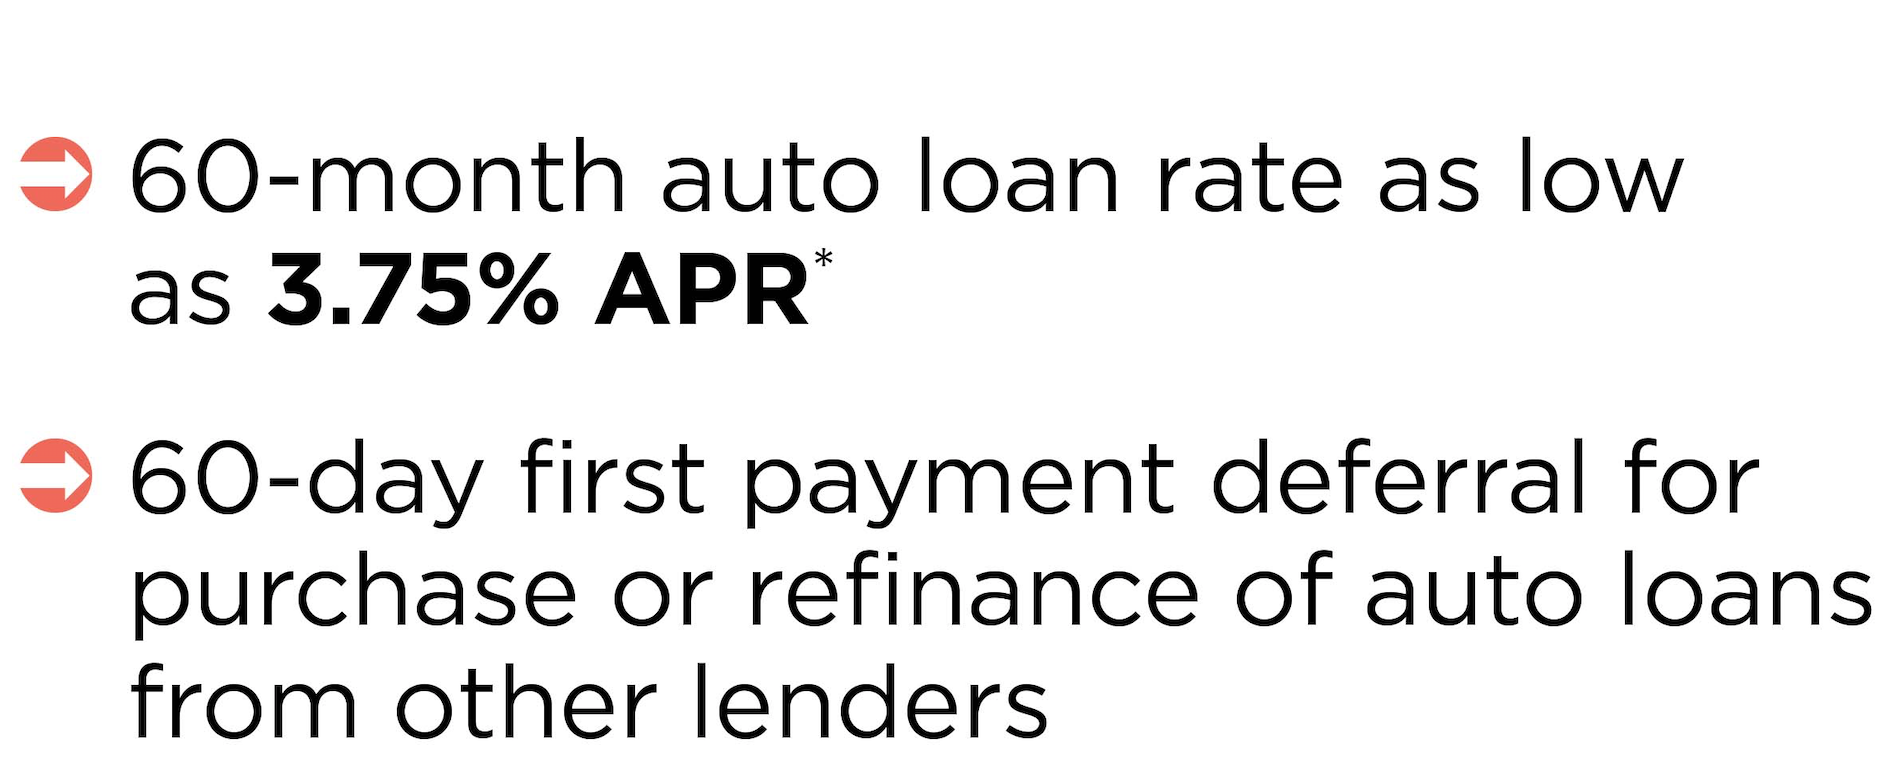 60-month auto loan rate as low as 3.75% APR* 60-day first payment deferra